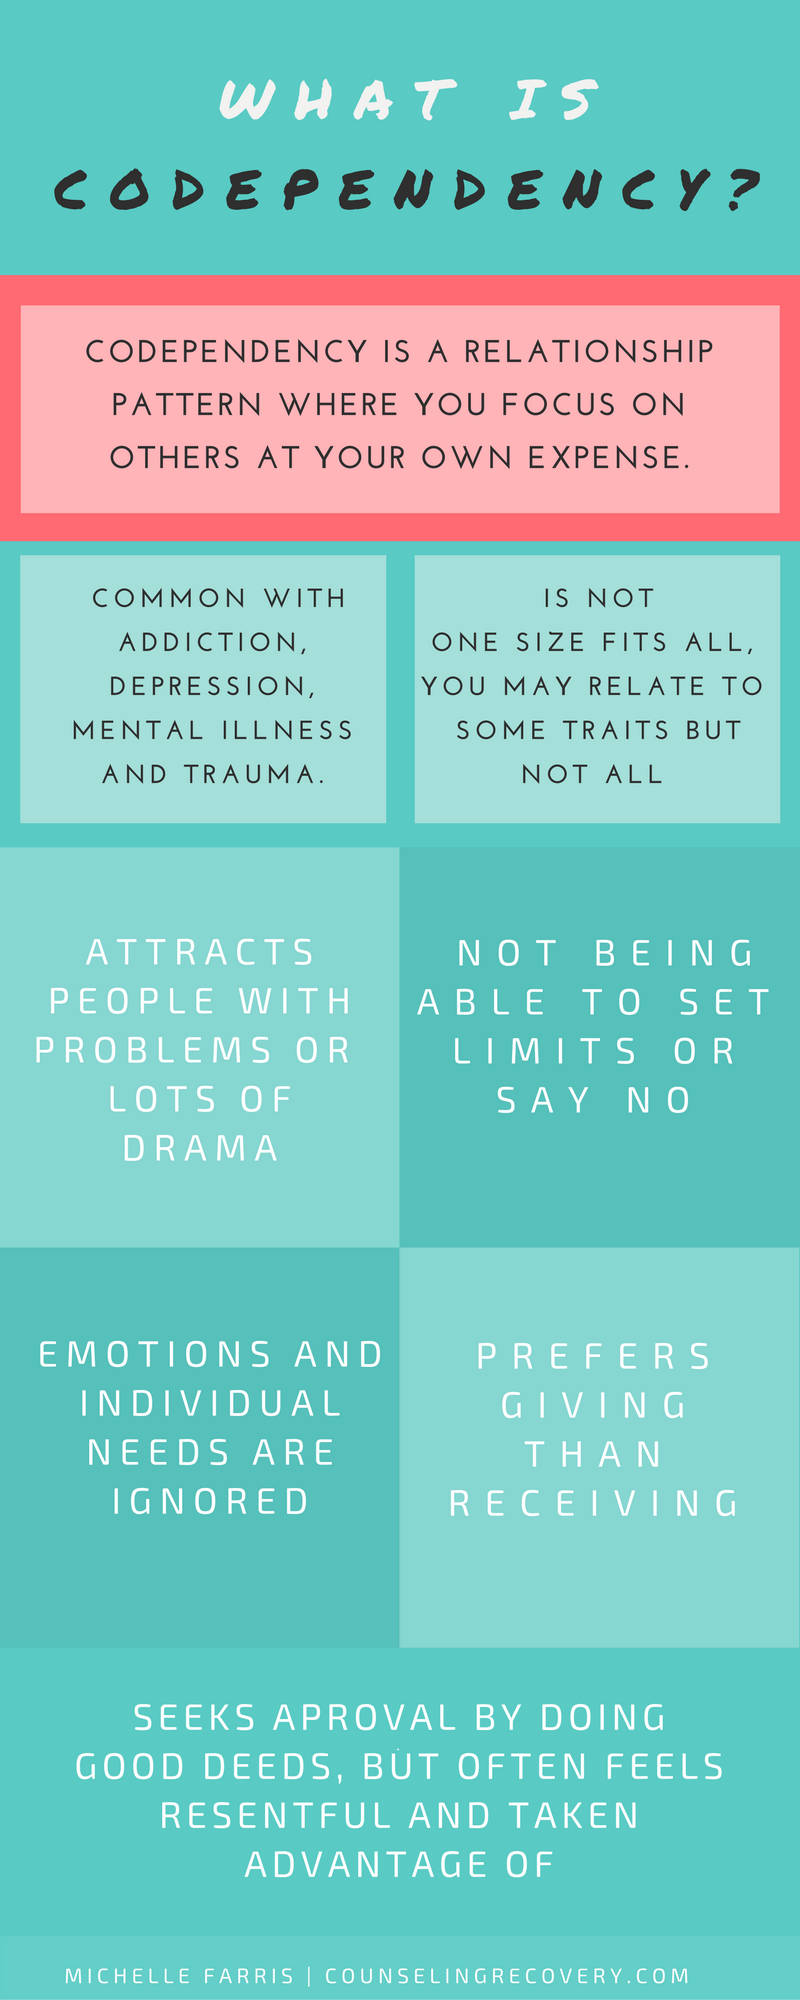 worksheet Codependency Therapy Worksheets 1000 images about therapy ideas codependency on pinterest enabling narcissist and relationship addiction